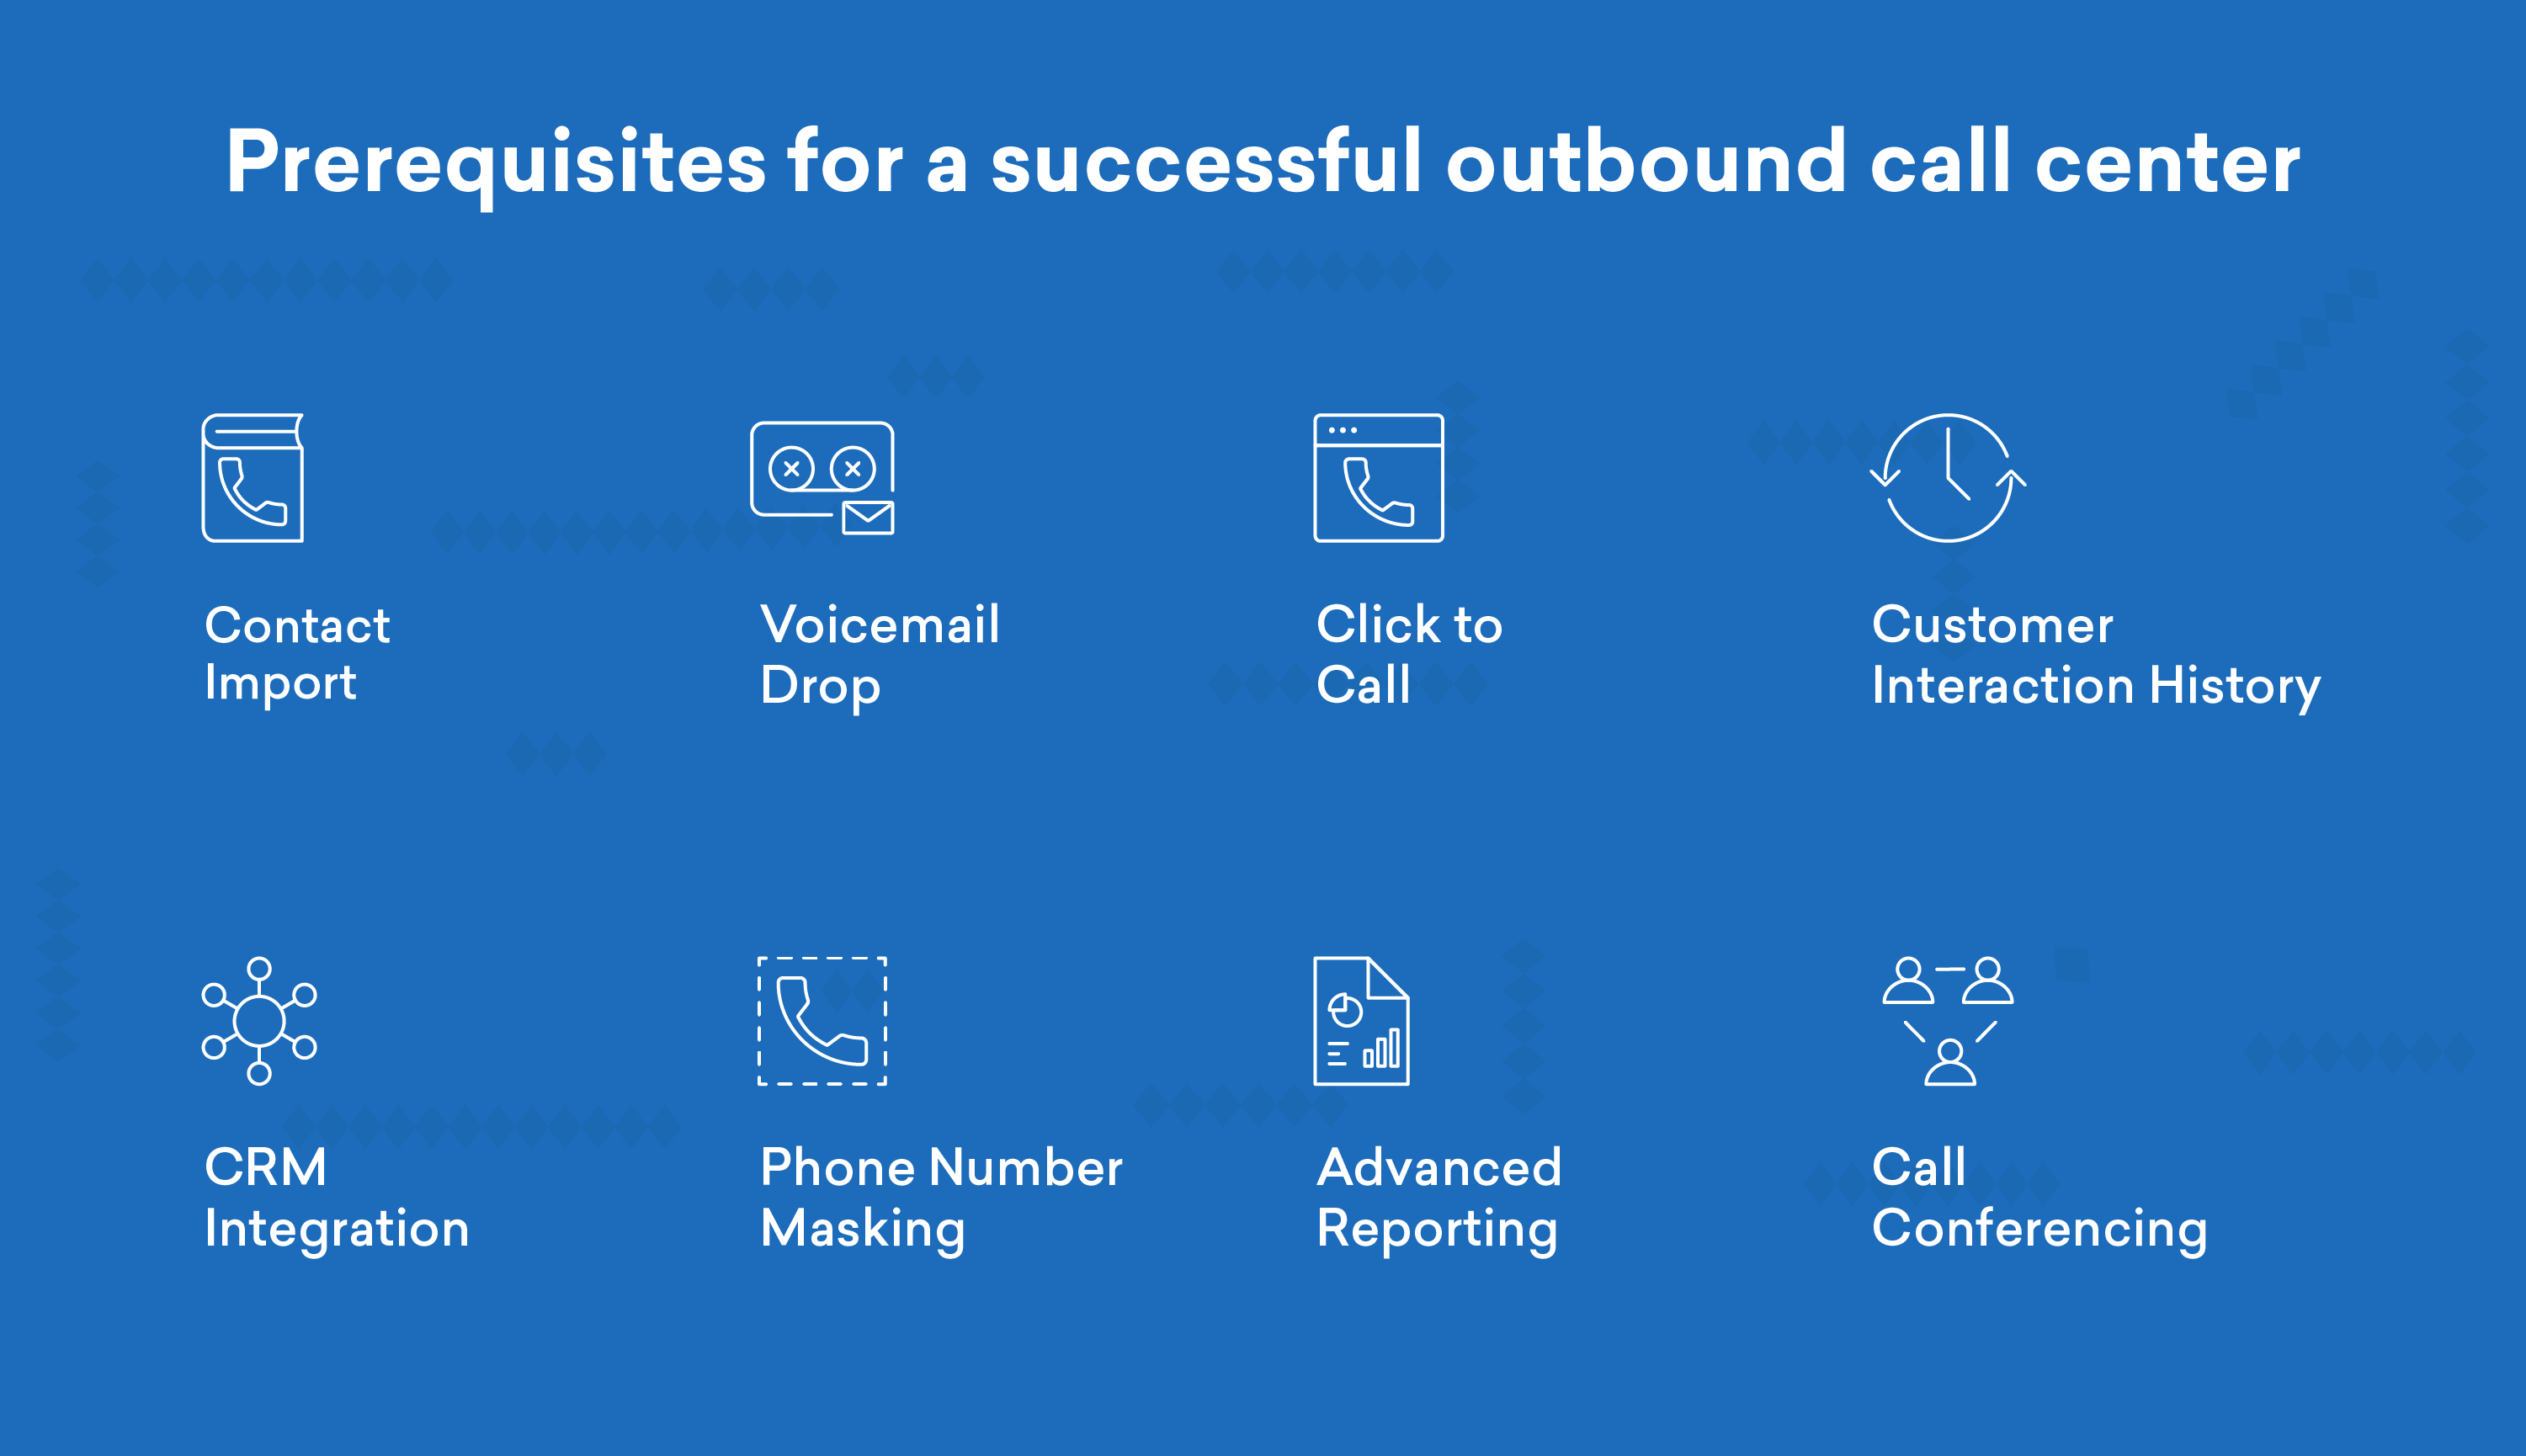 Prerequisities of a outbound call center that facilitates seamless outbound calling.